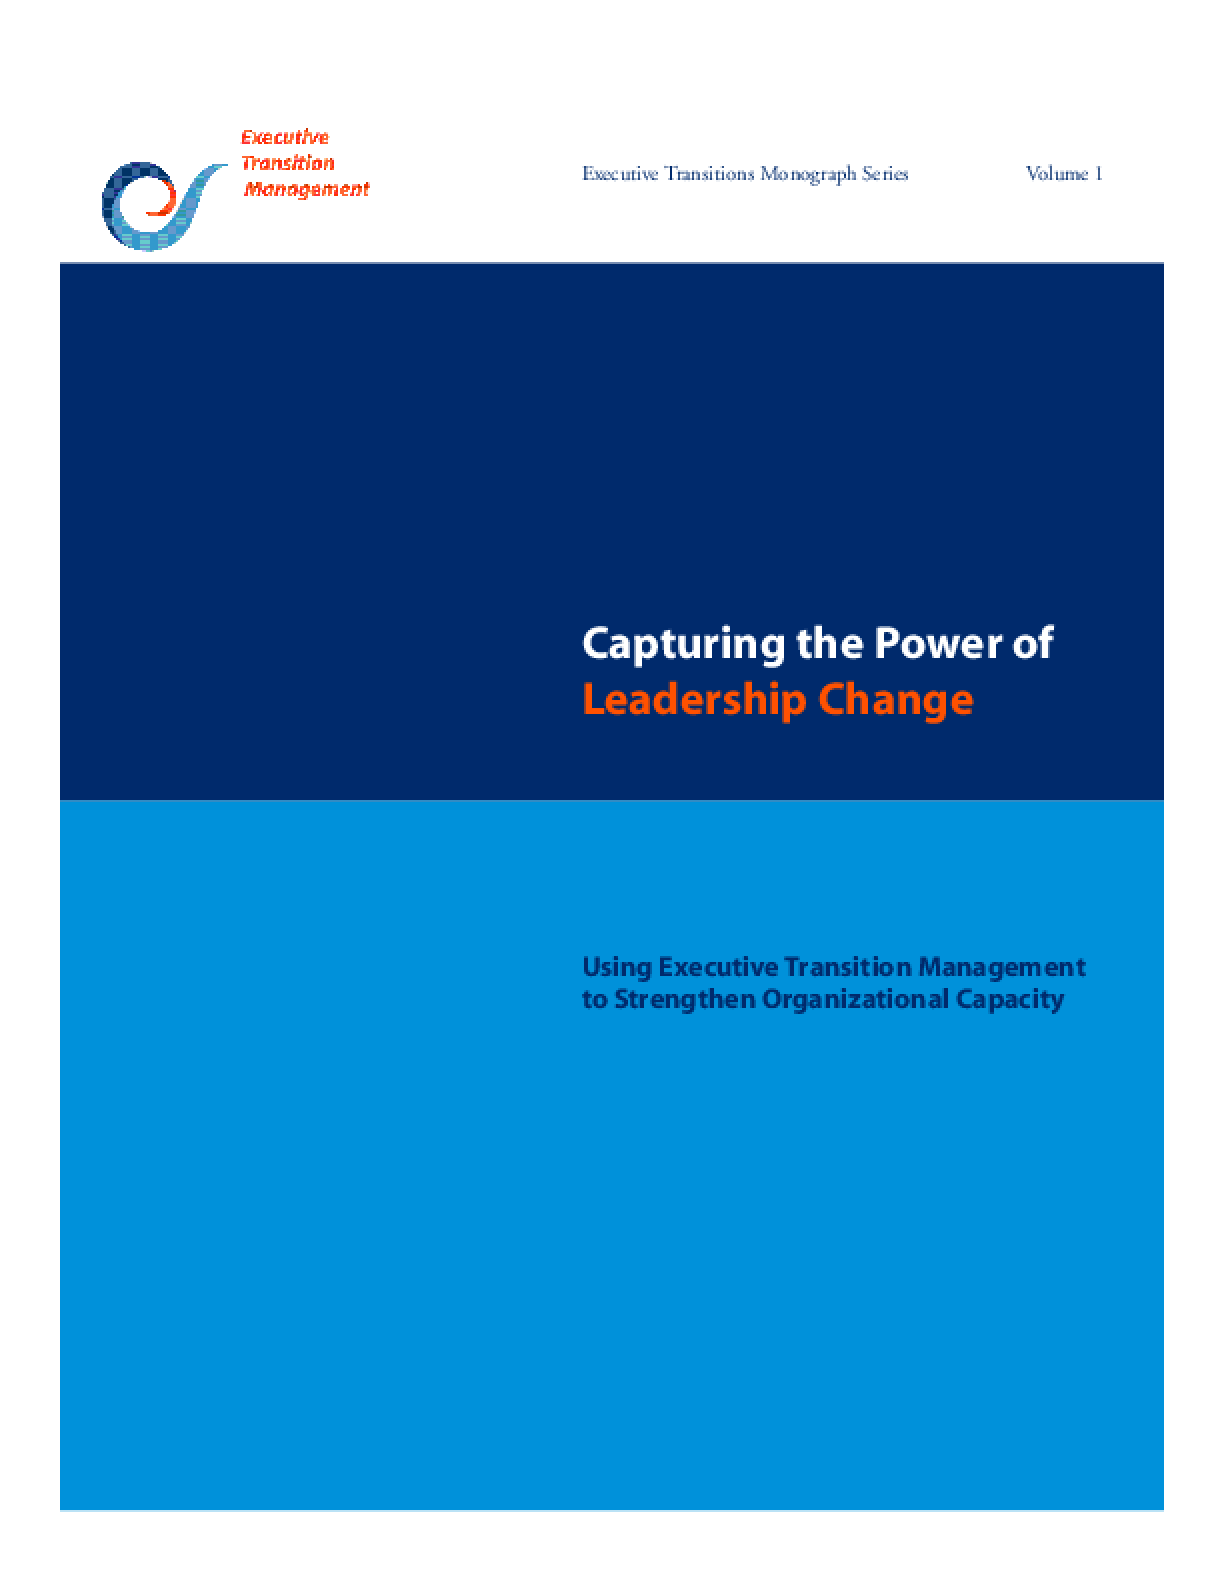 Capturing the Power of Leadership Change: Using Executive Transition Management to Strengthen Organizational Capacity